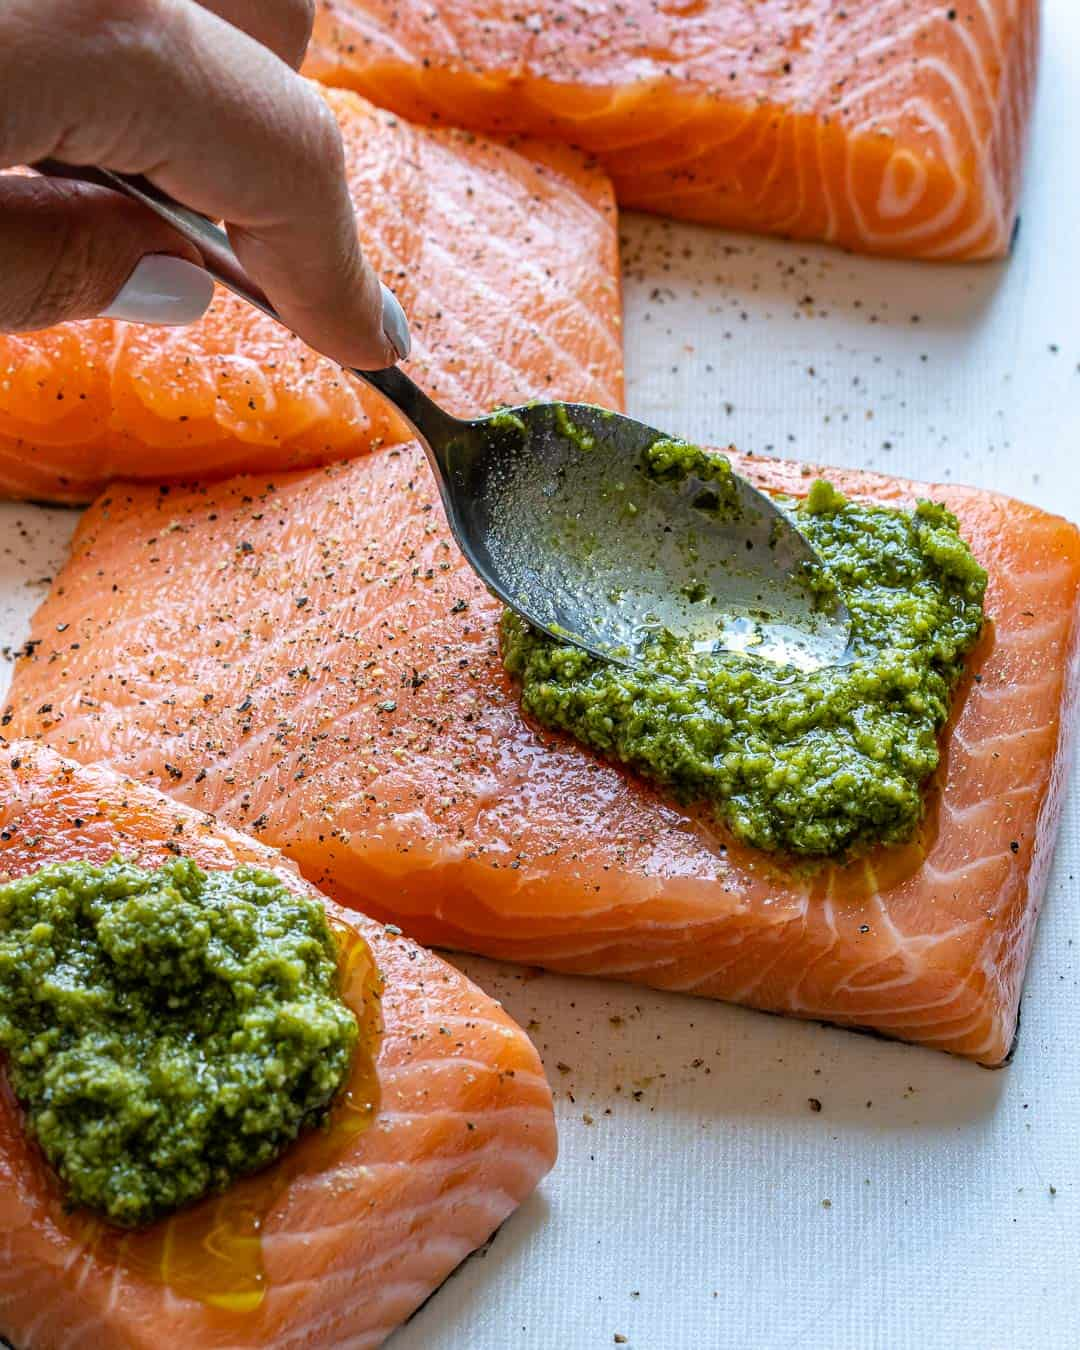 Spoon spreading pesto sauce evenly on salmon fillets